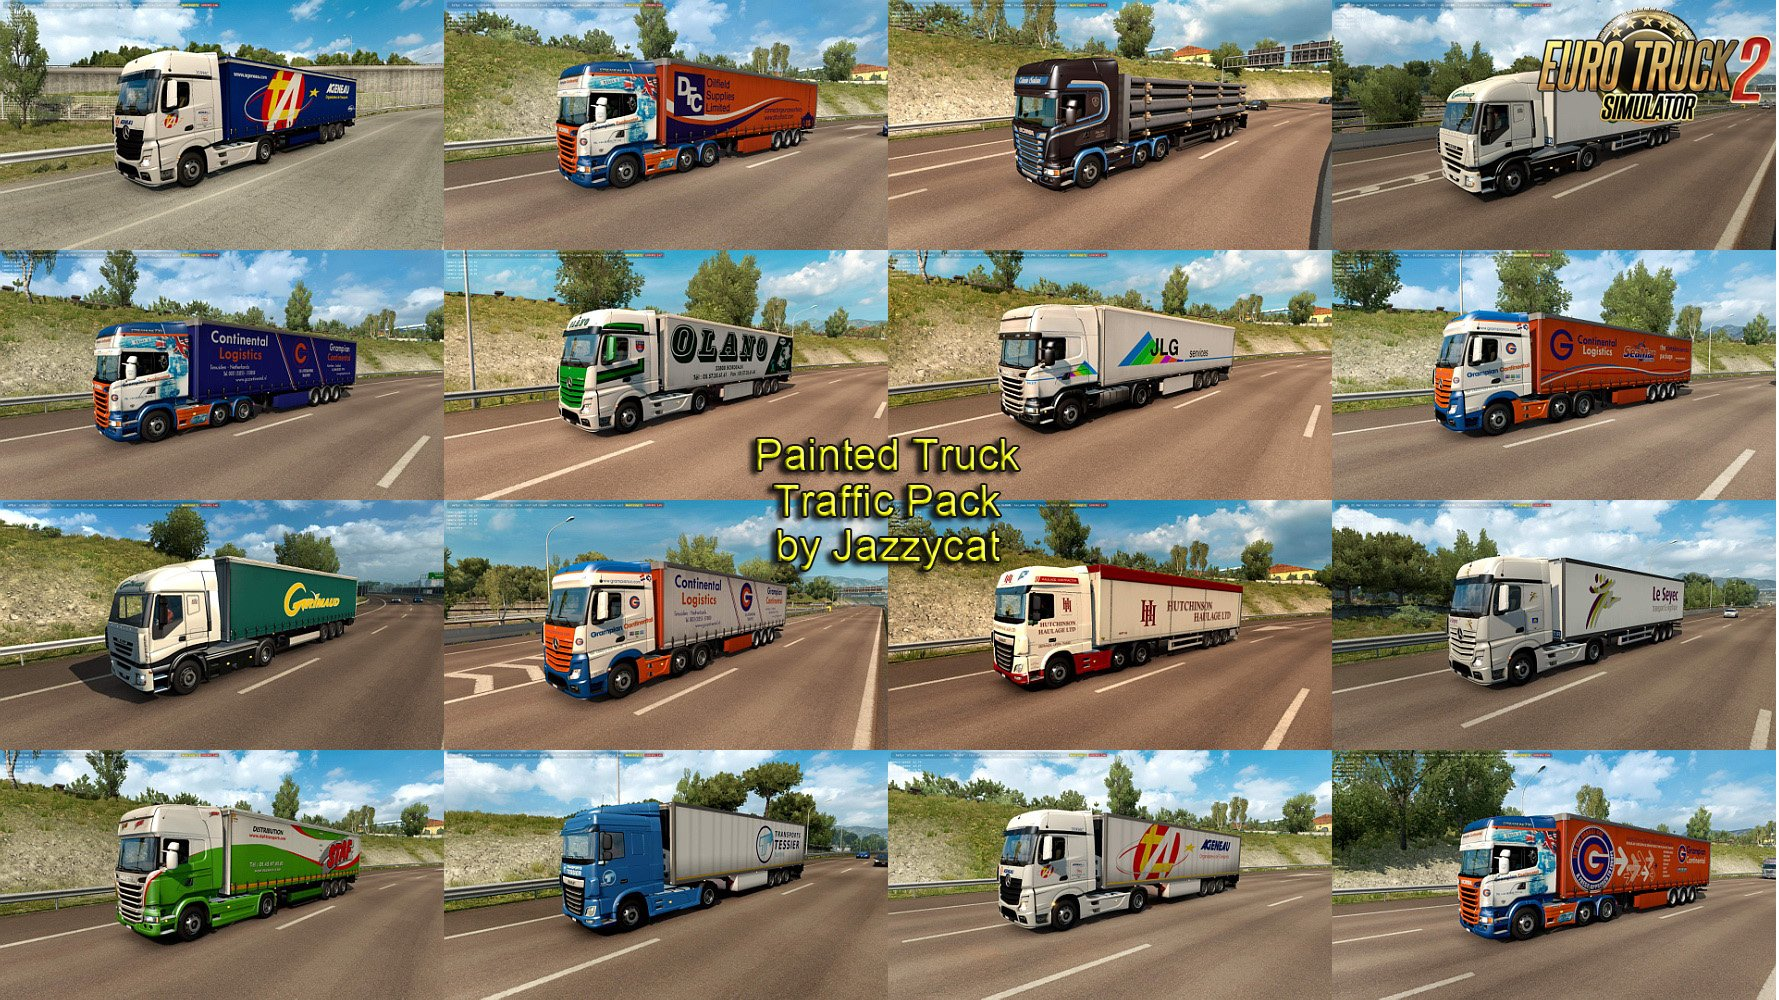 Painted Truck Traffic Pack v5.8.1 by Jazzycat